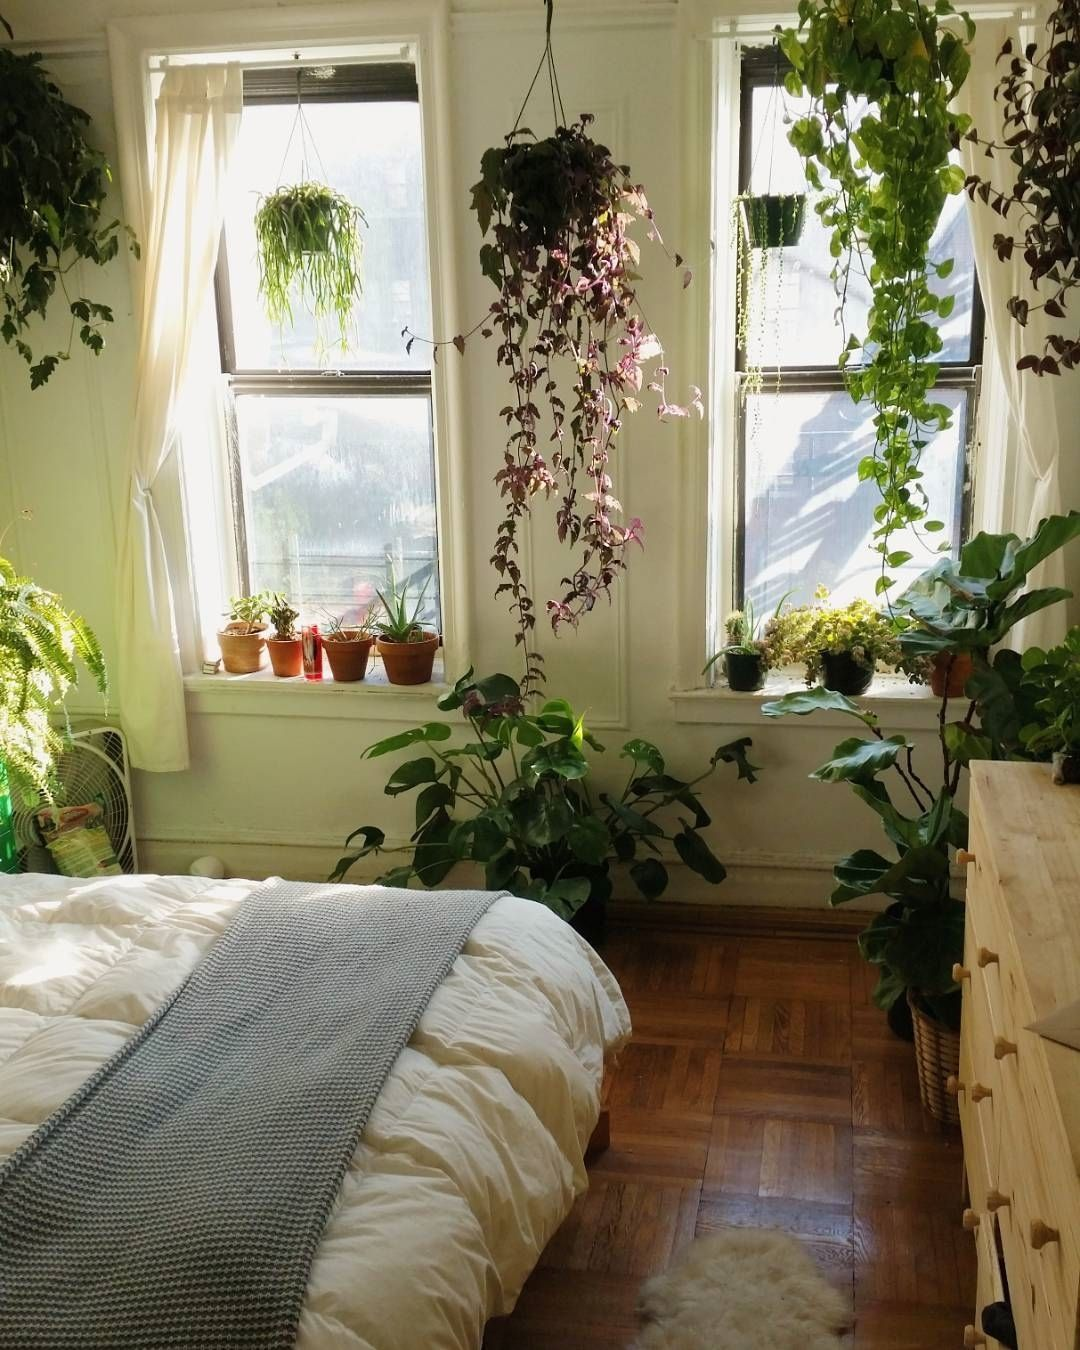 "Urban Jungle Bloggers On Instagram: ""We Could Stay Here"